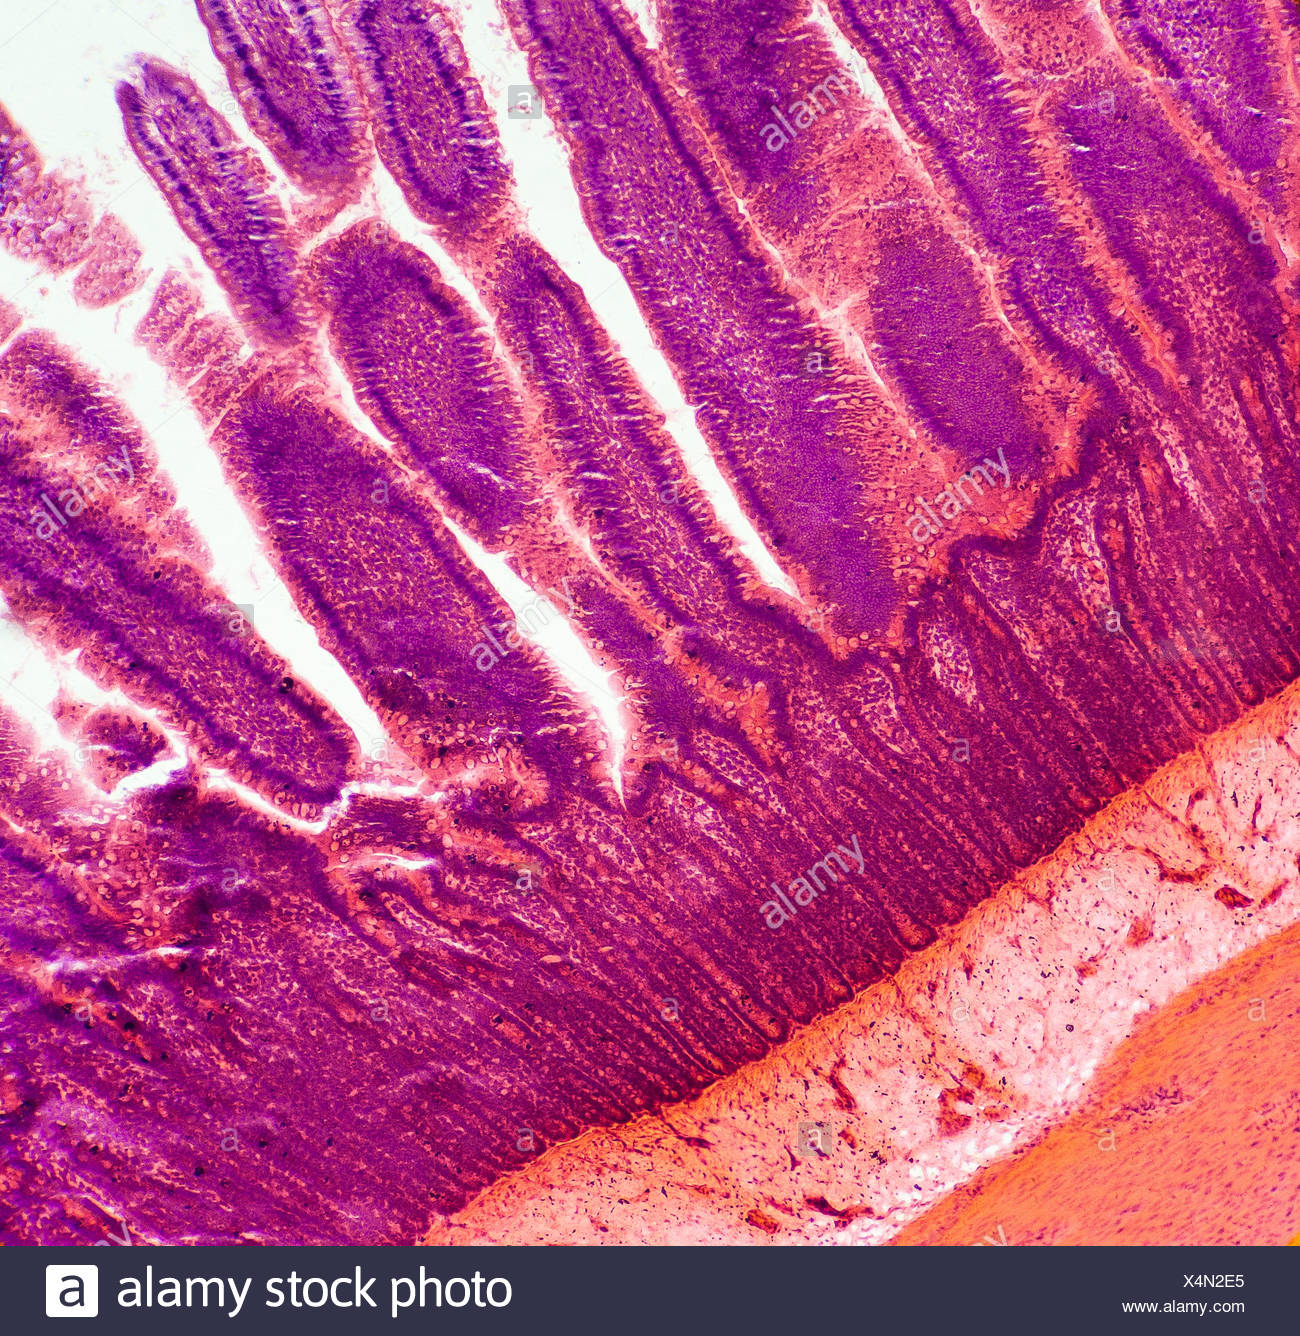 Microscopic Image At 100x Of A Small Intestine Showing The Villi